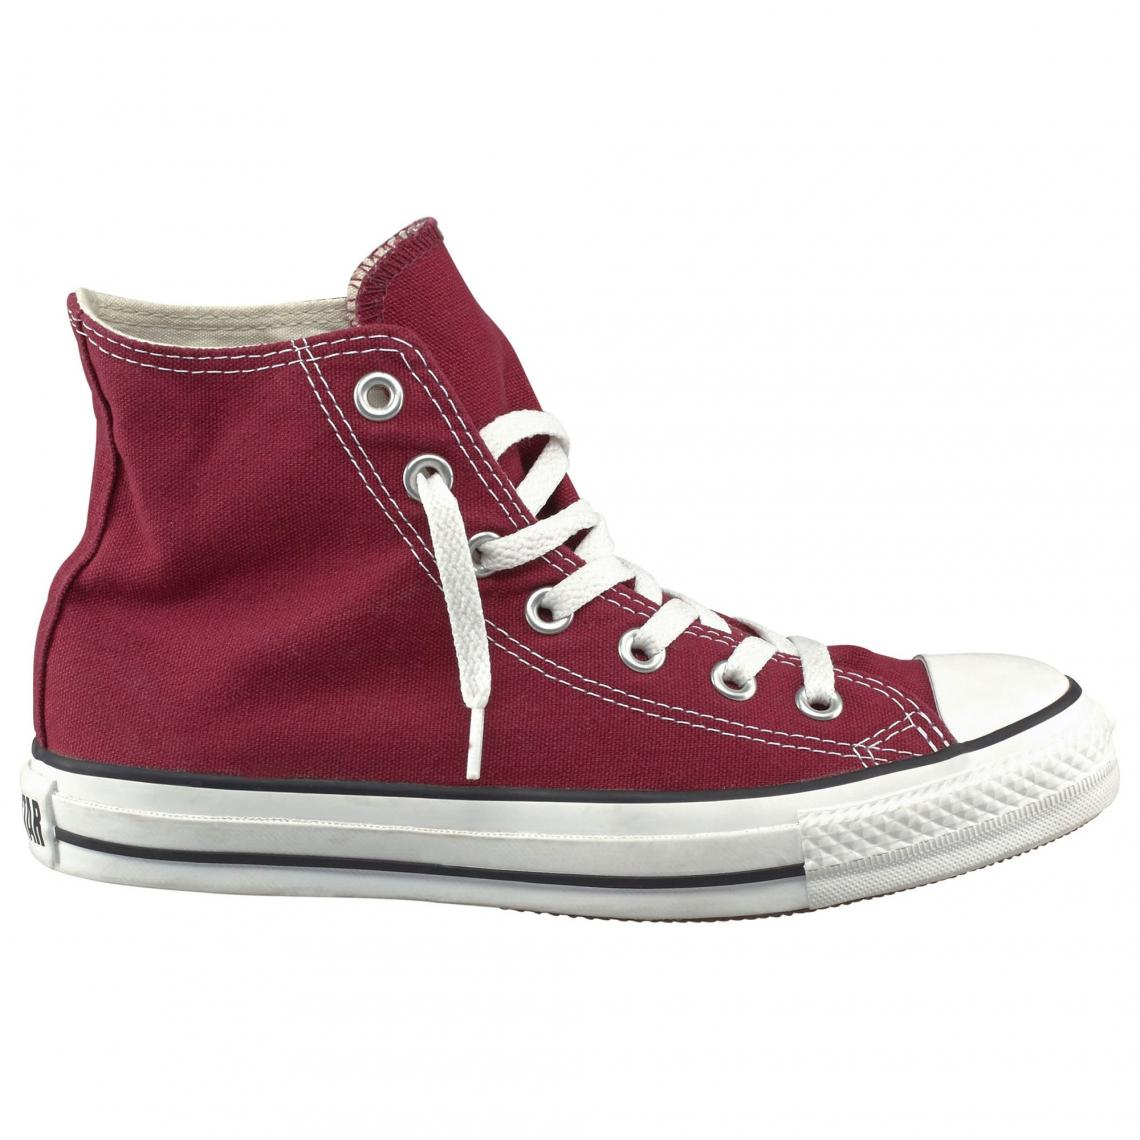 Taylor Chuck Bordeaux Baskets Star All Montantes Hi Homme Converse qaUxt6U